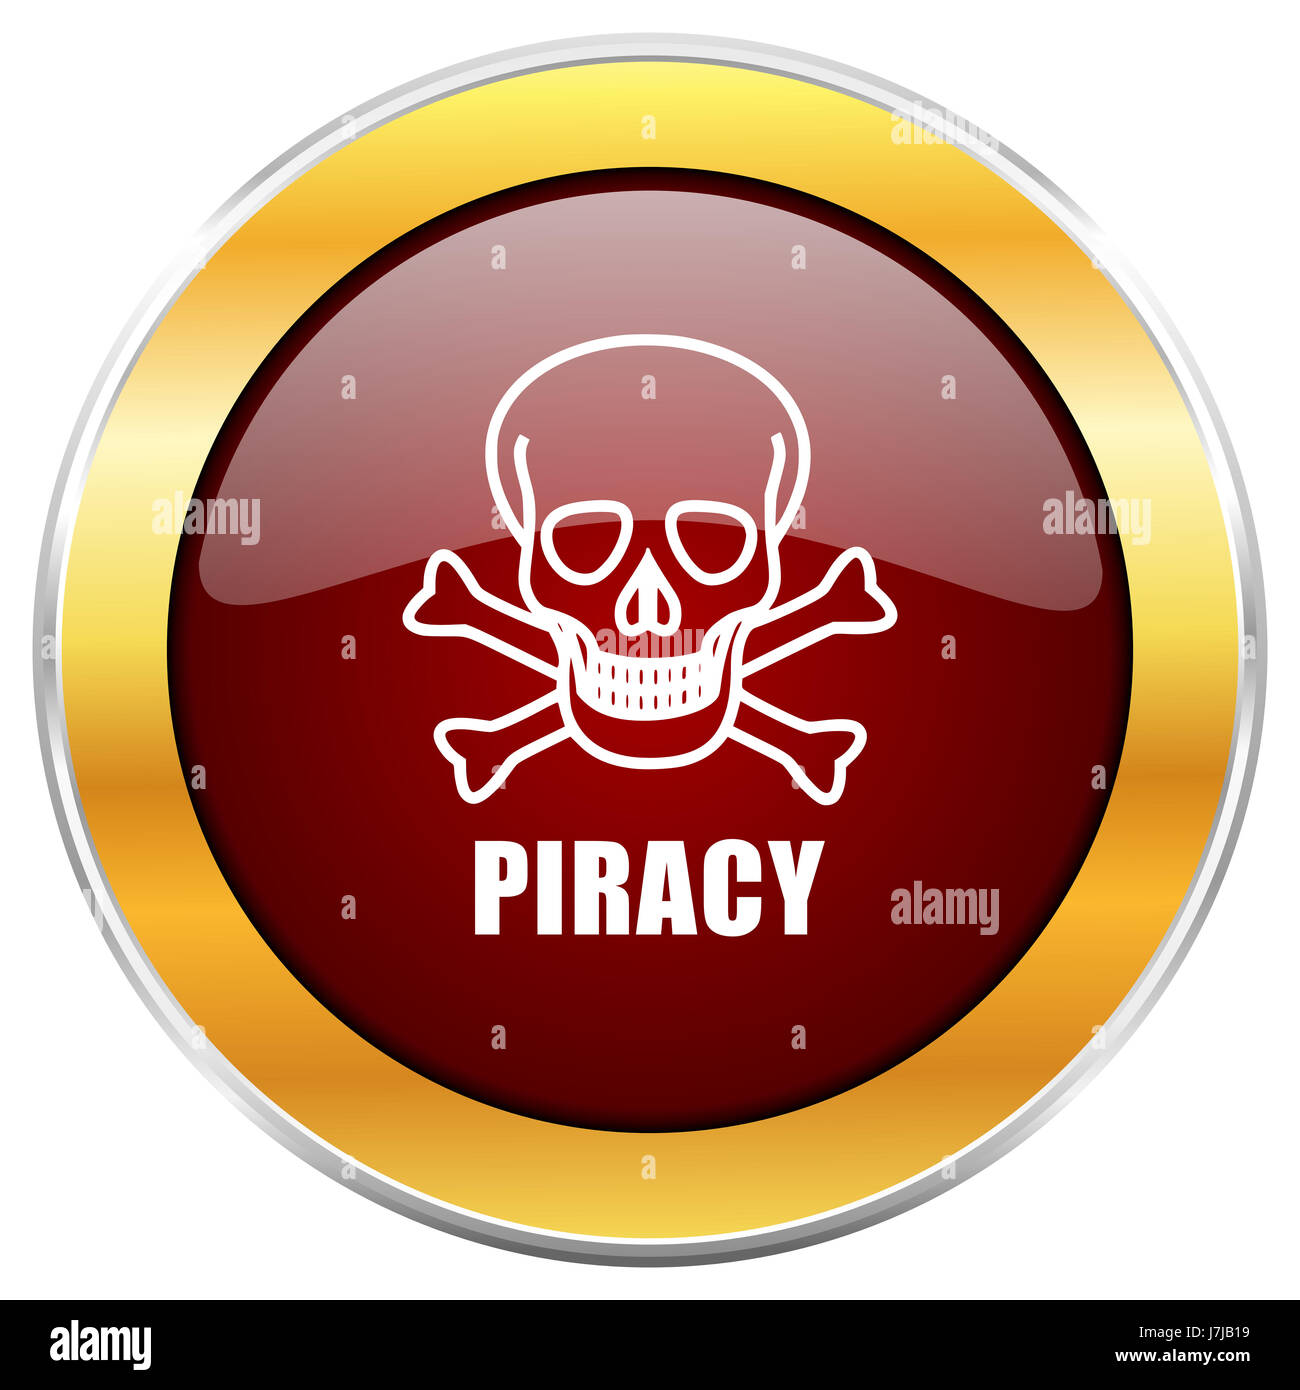 Piracy skull red web icon with golden border isolated on white background. Round glossy button. Stock Photo